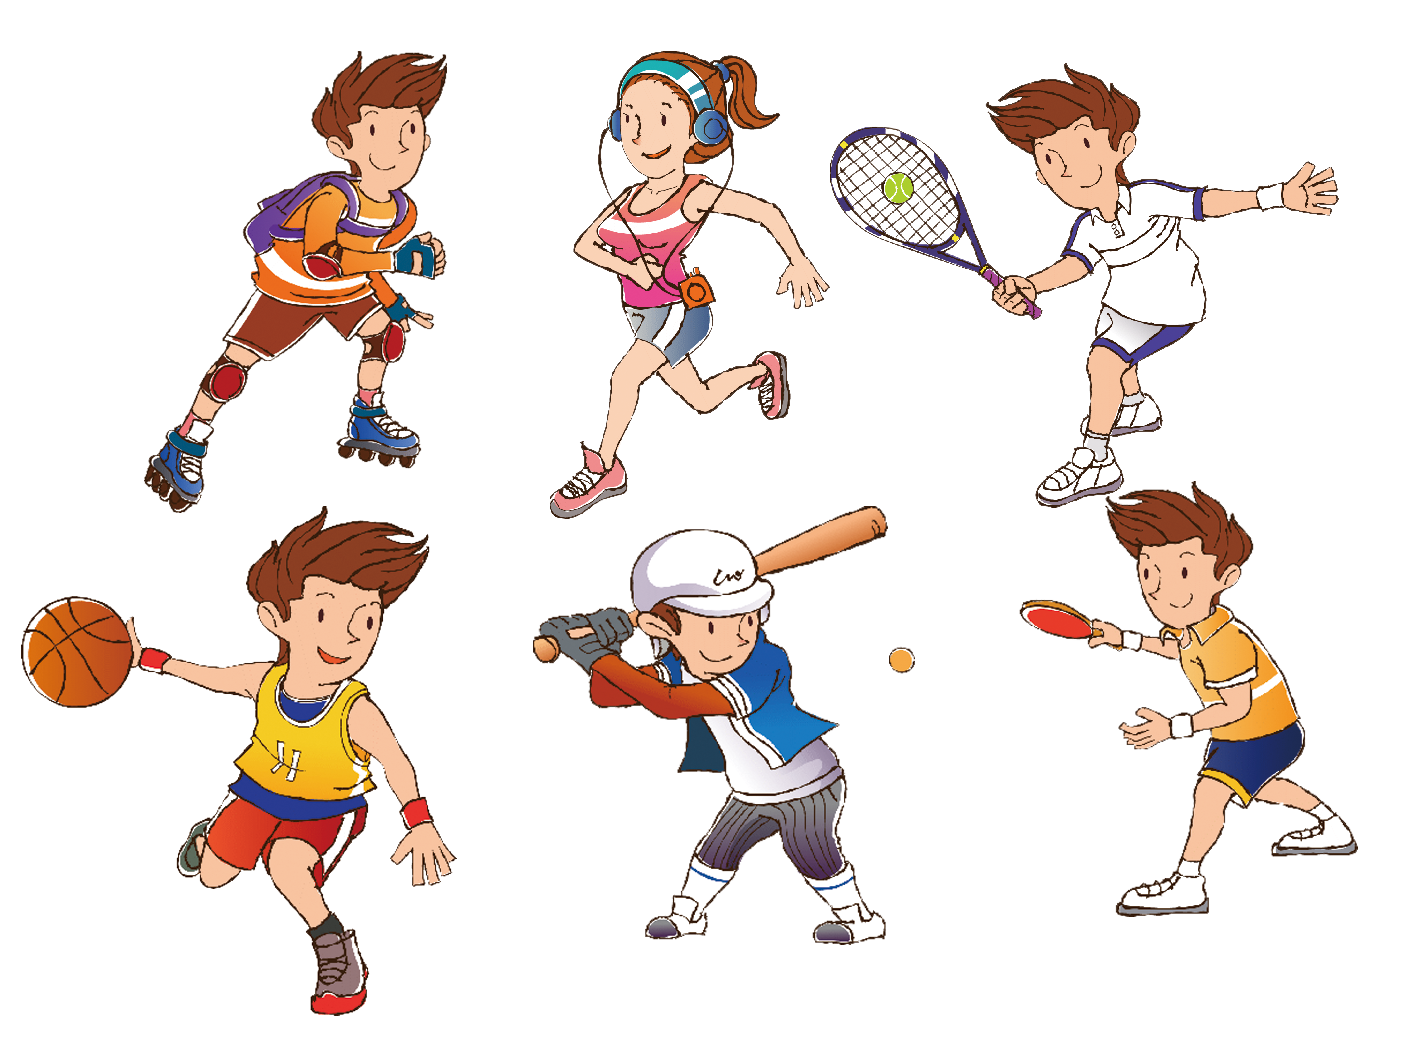 Cool cartoon character with basketball clipart svg free stock Cartoon Sport Athlete Clip art - Cartoon athletes 1404*1038 ... svg free stock